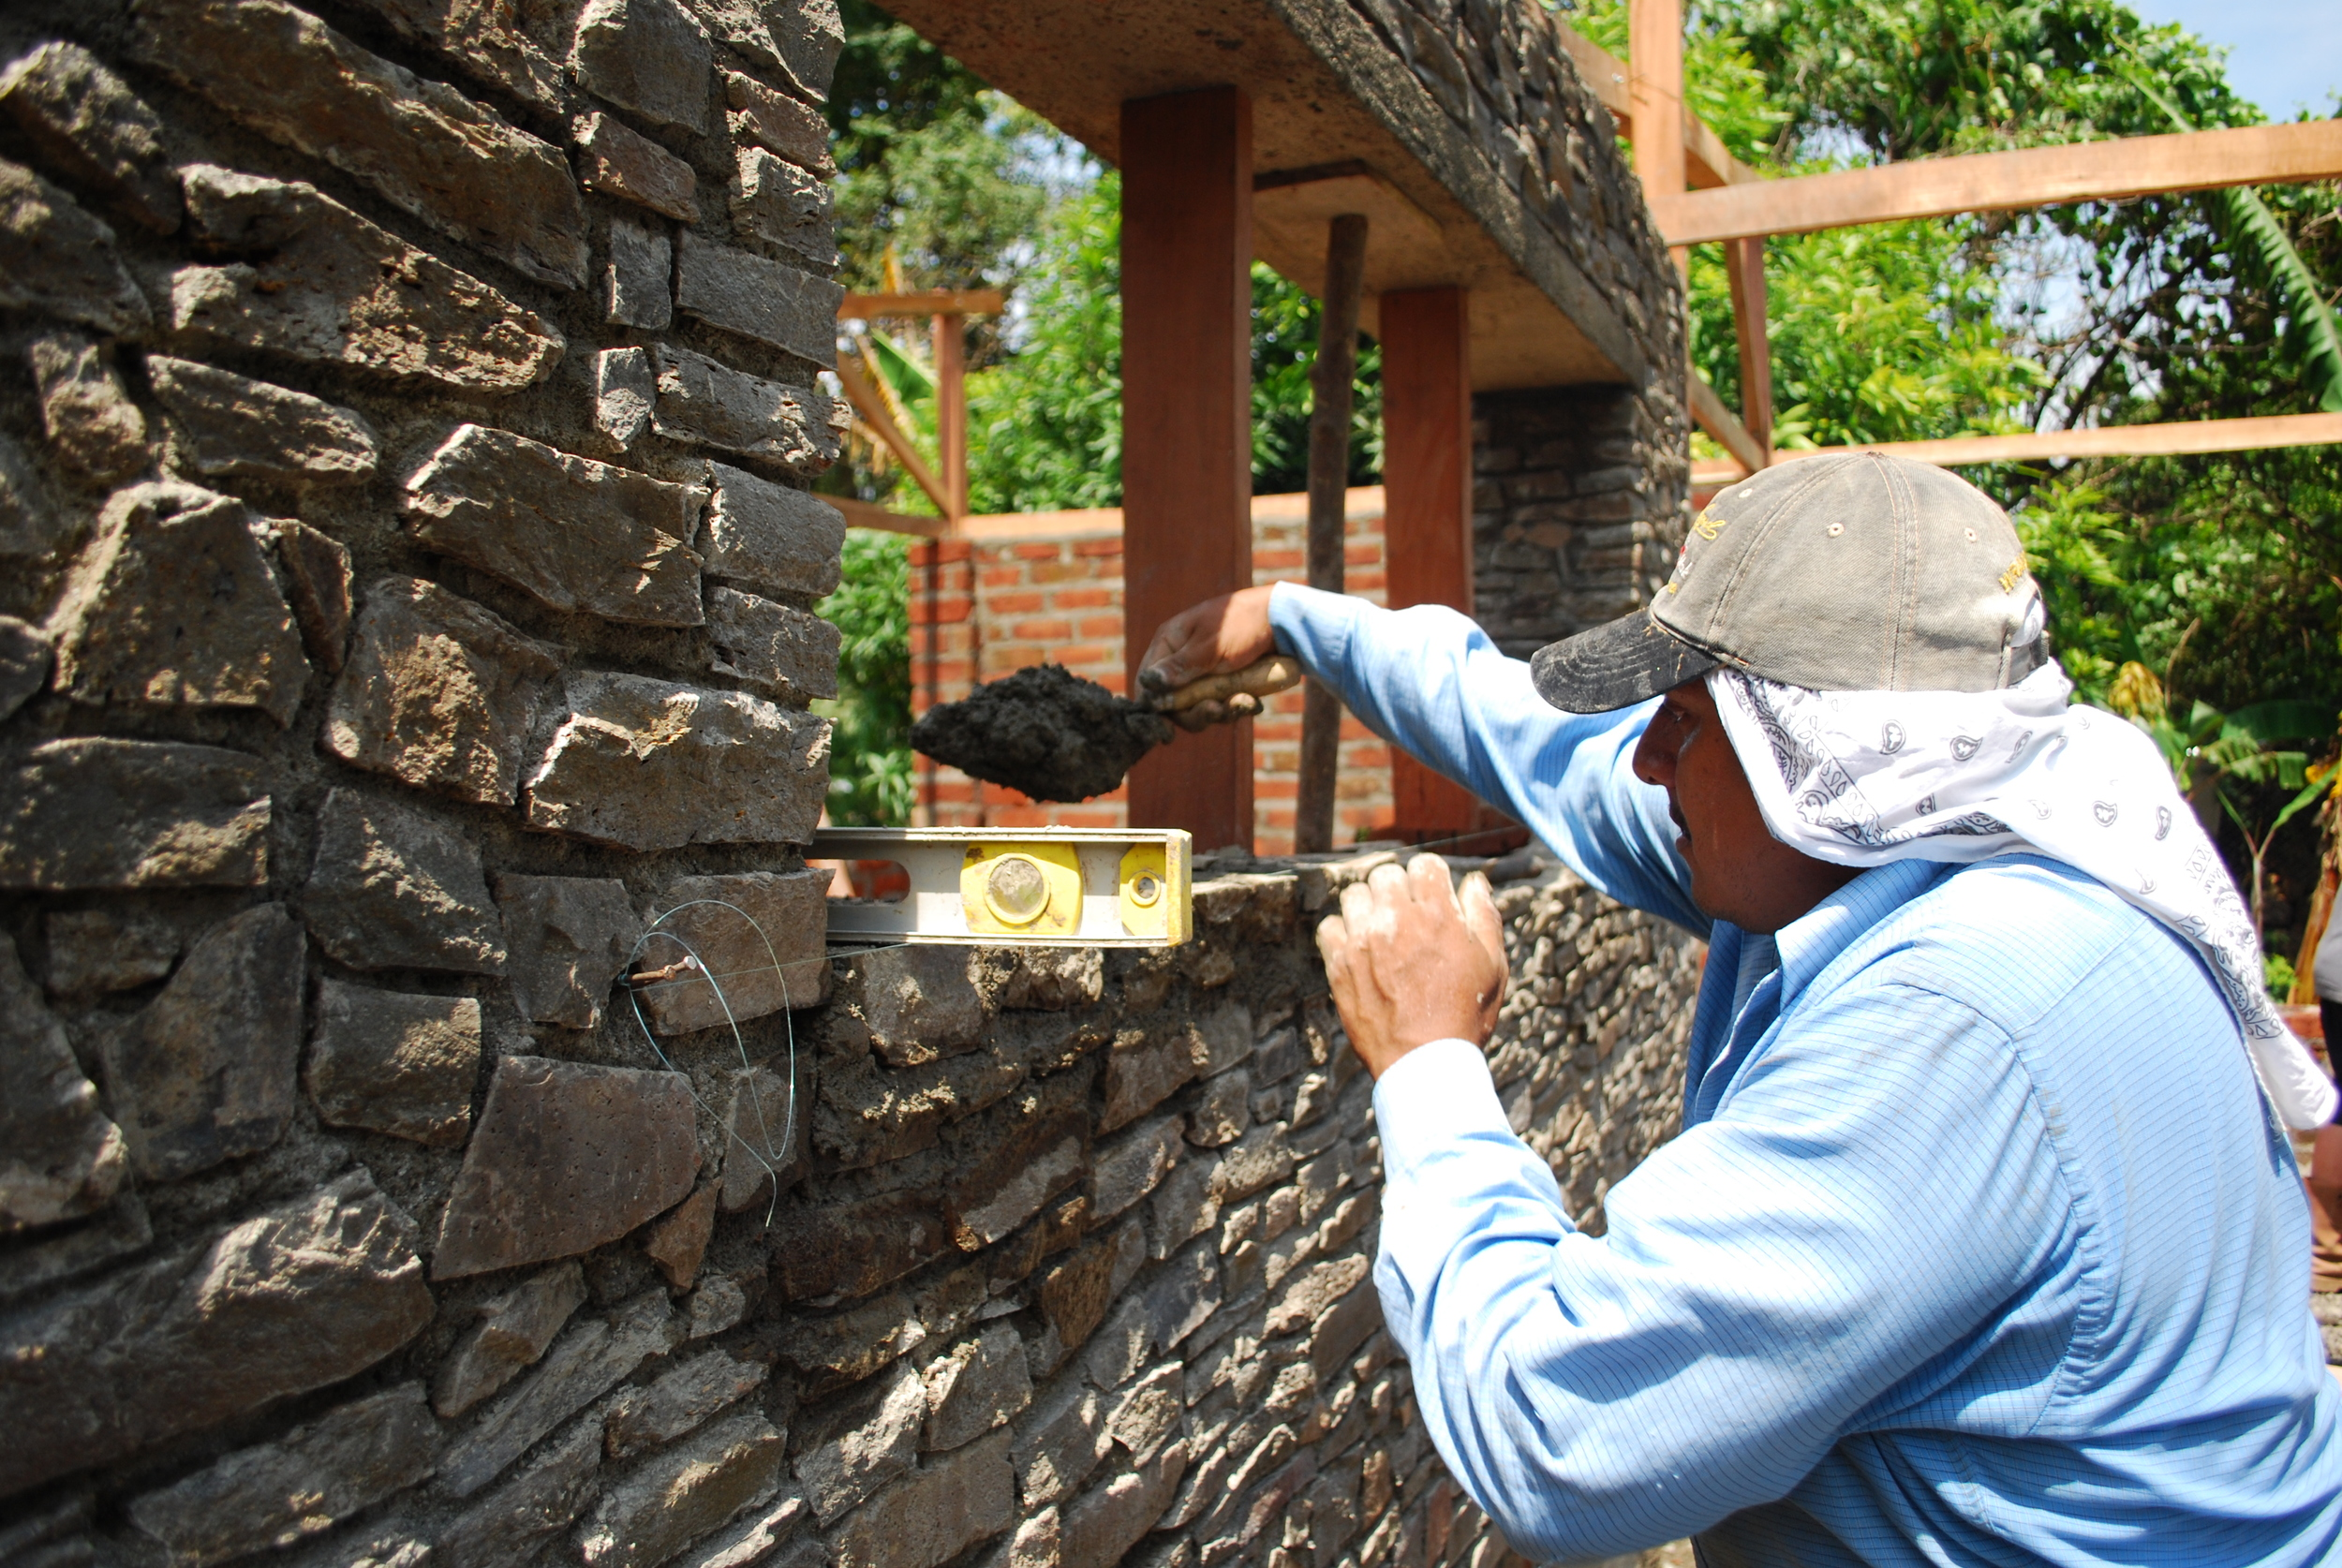 07 Laying stone sills.JPG